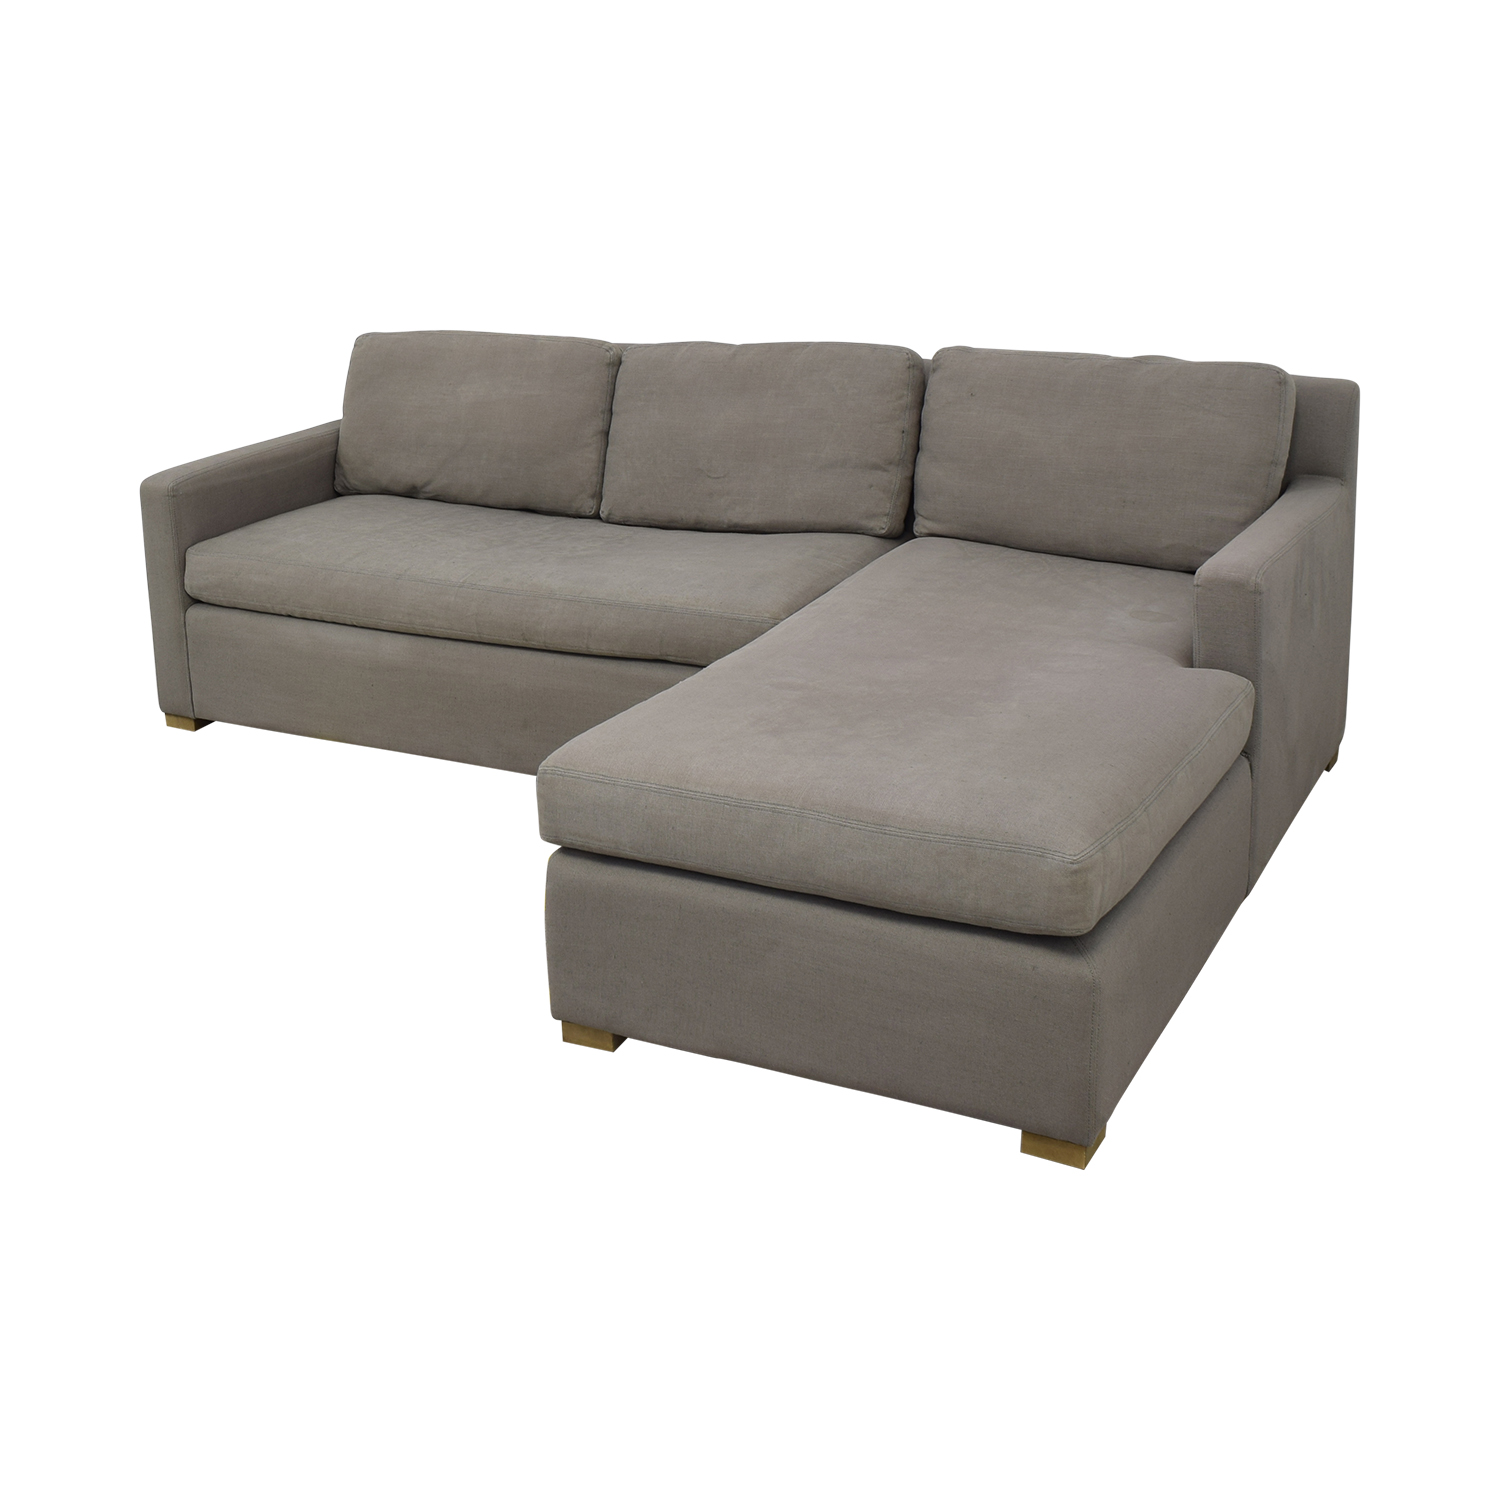 Restoration Hardware Restoration Hardware Belgian Track Arm Right-Arm Chaise Sectional on sale